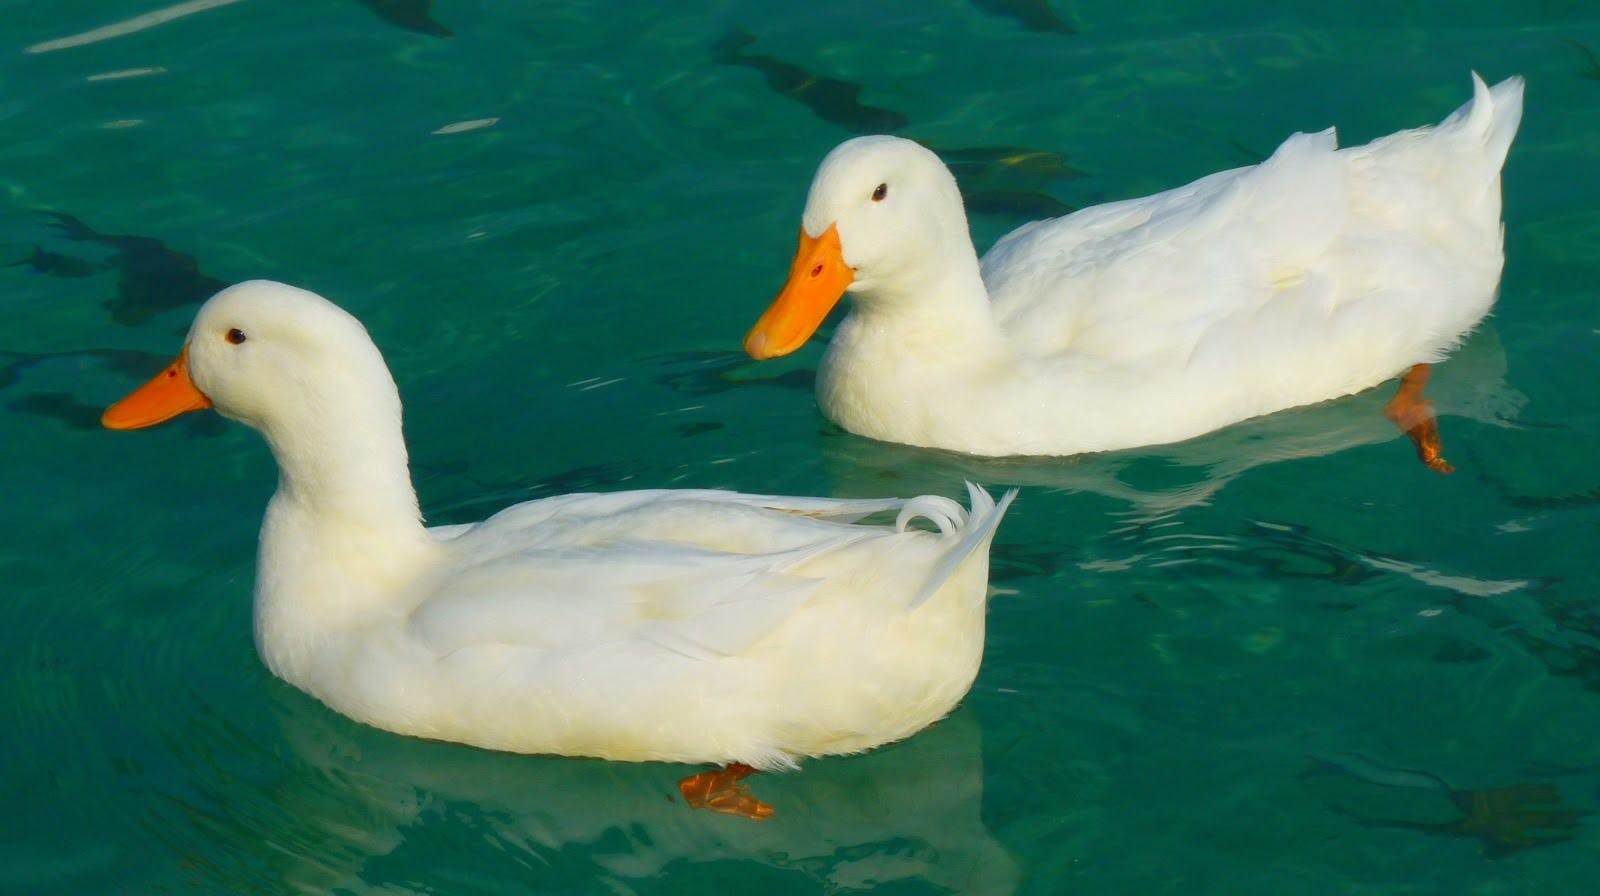 Two ducks in a pond.